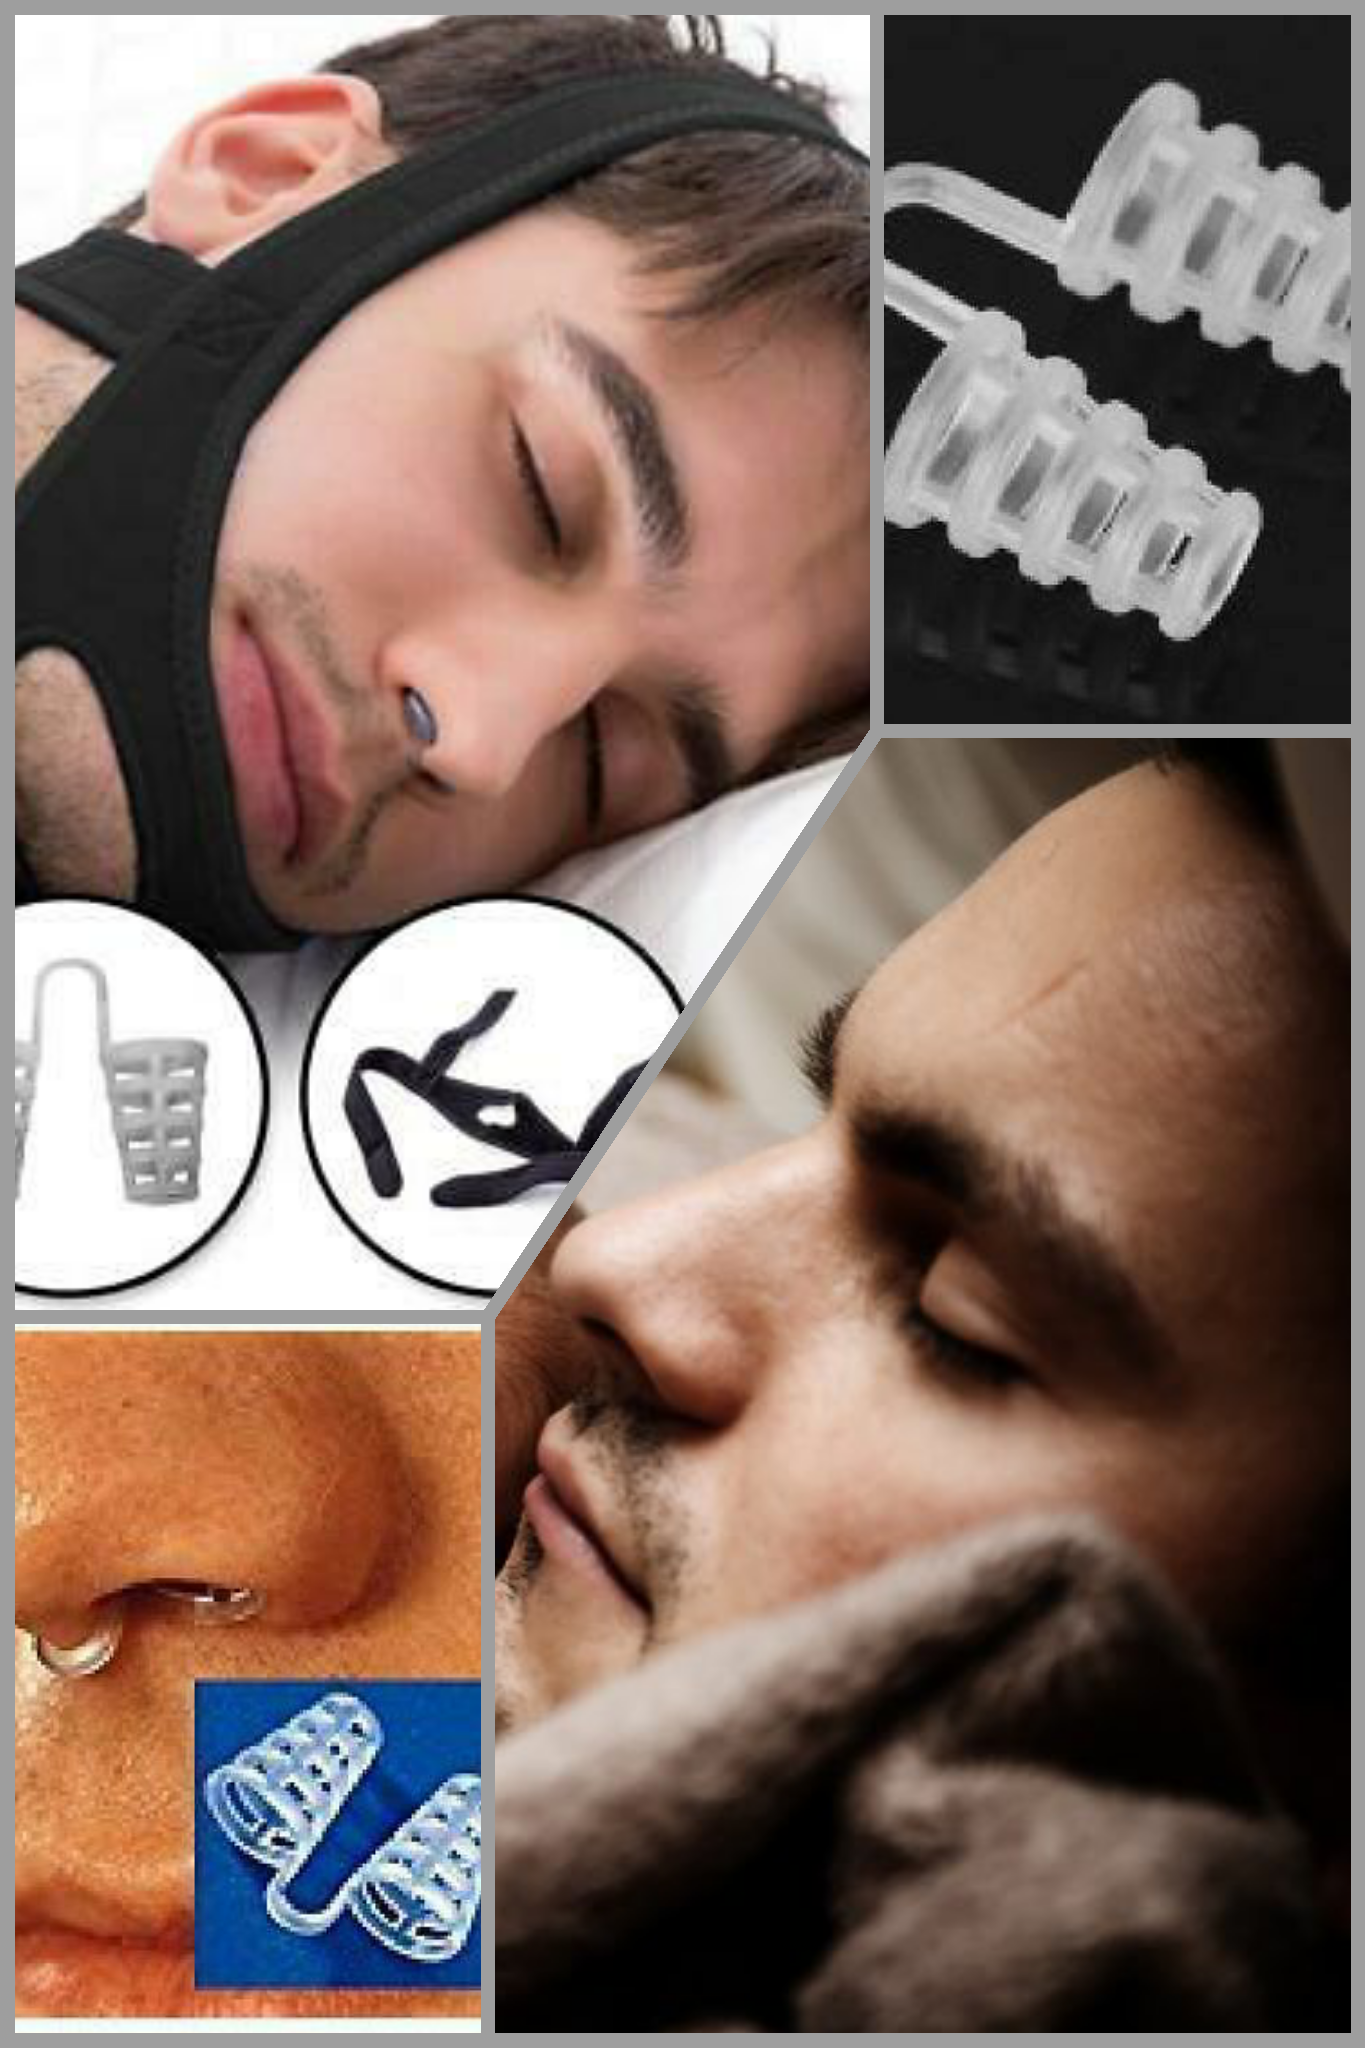 Anti Snore Chin Strap And Device Nose For Men Excellent Quality Fast Delivery Ebay Snoring Workout Programs How To Stop Snoring